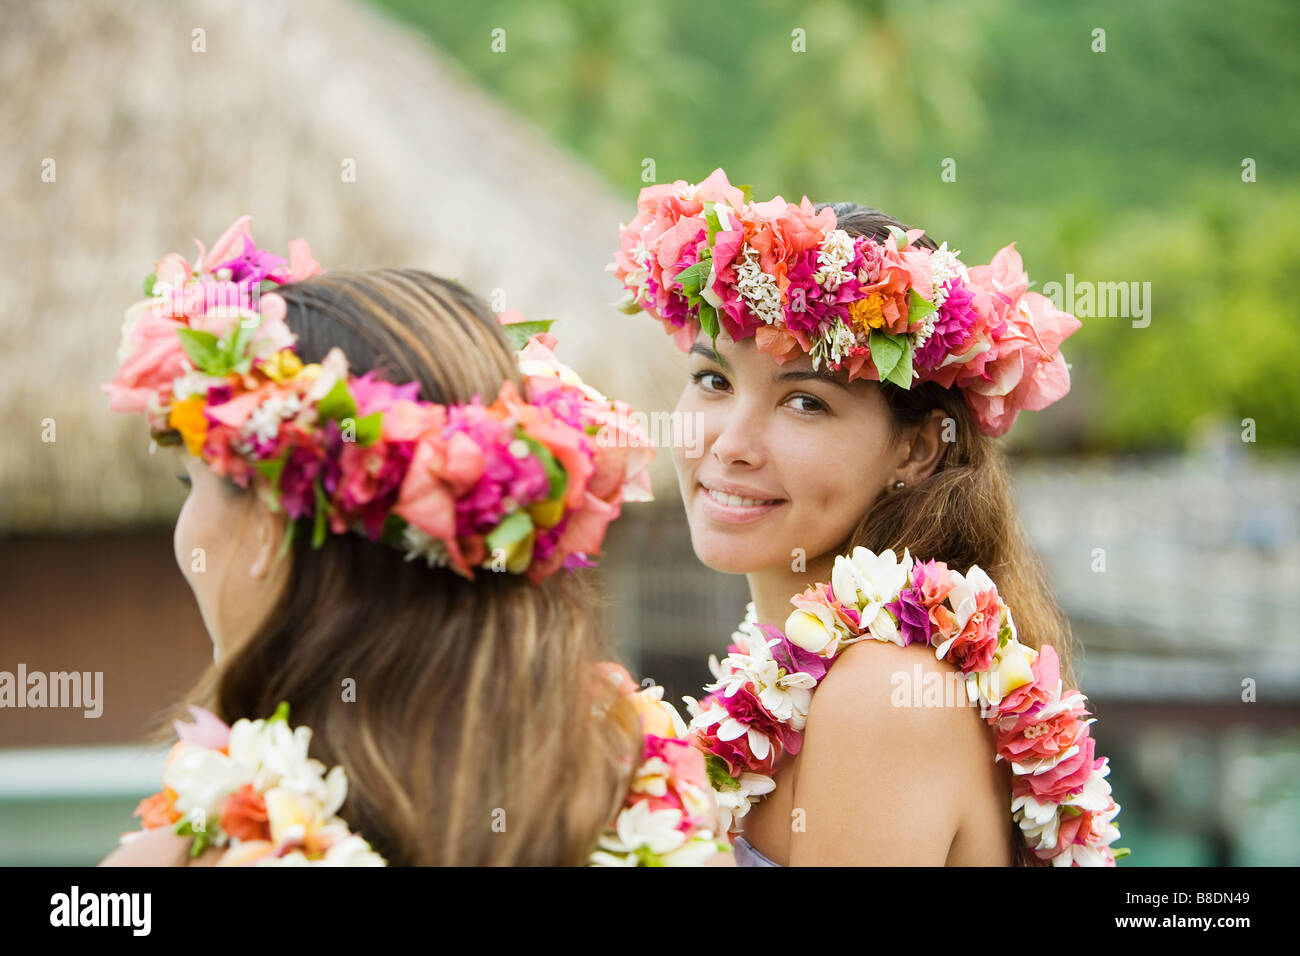 Young women with flowers in hair in moorea - Stock Image